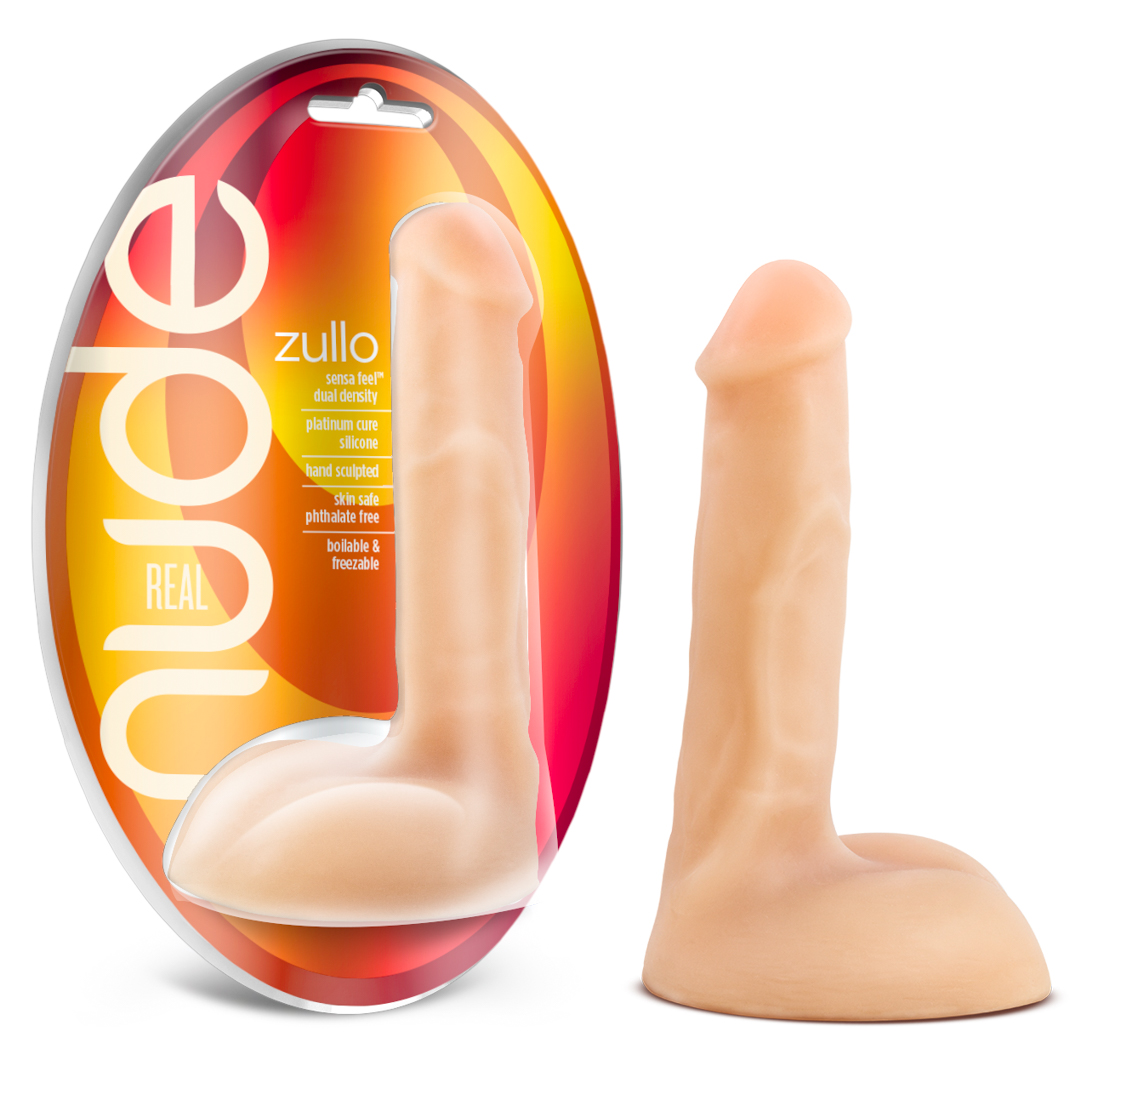 Real Nude - Zullo - Beige